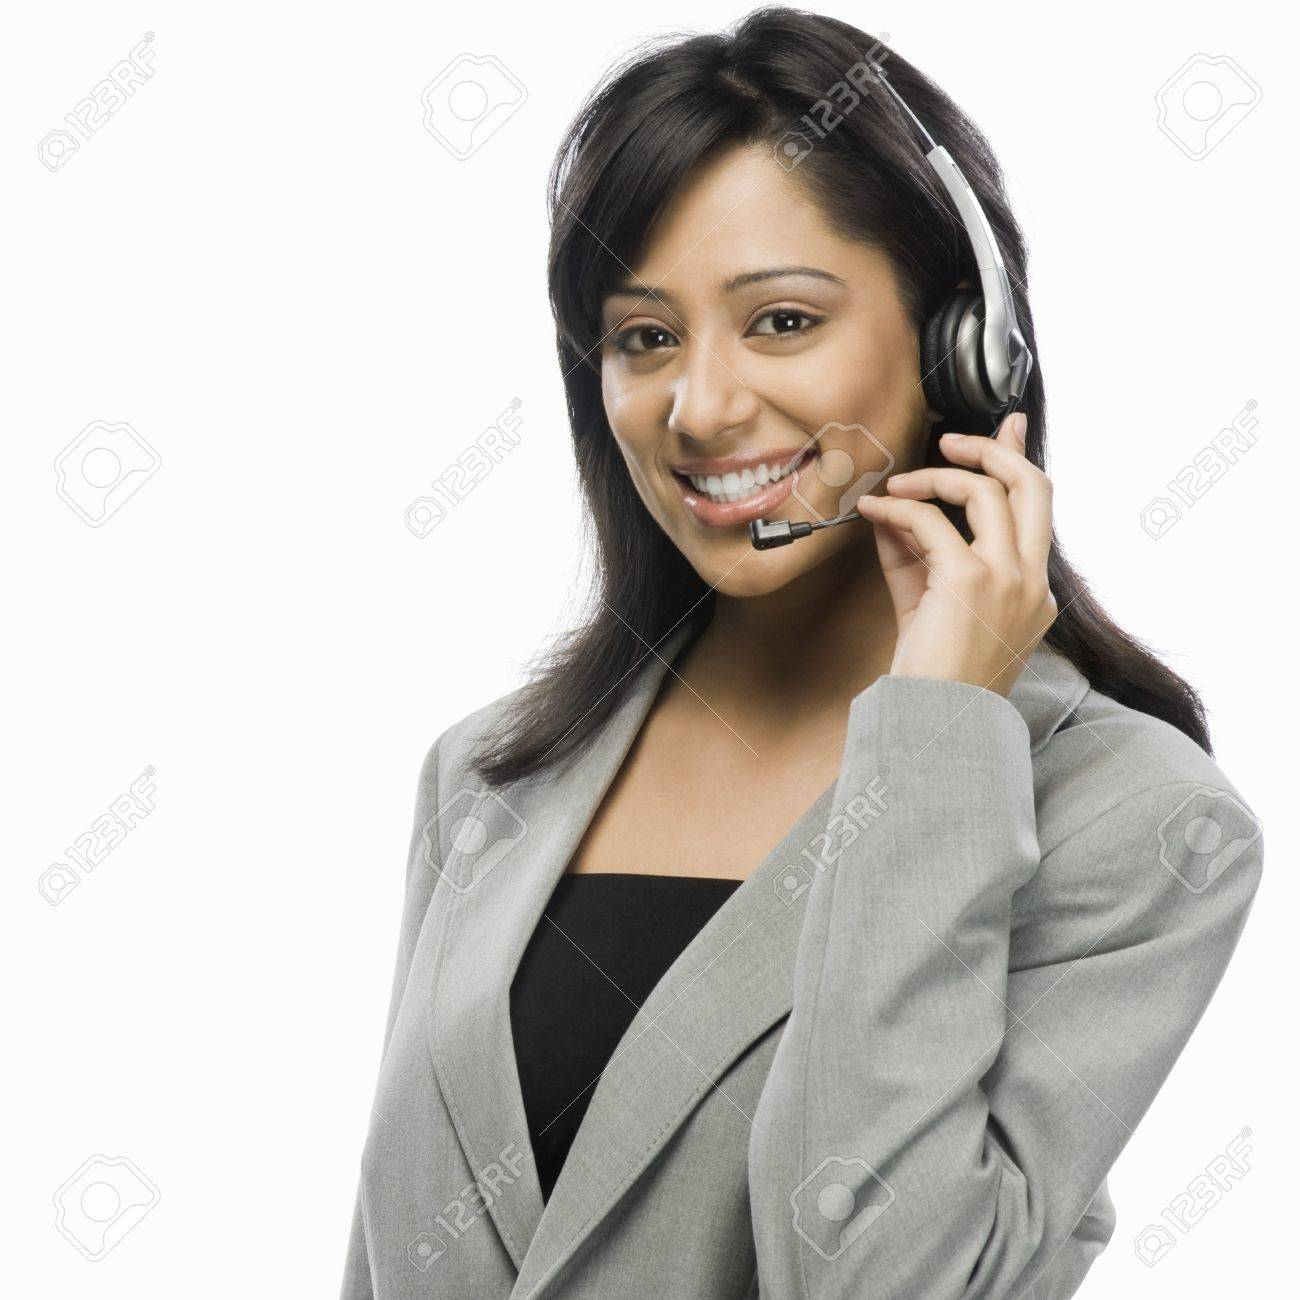 Portrait of a female customer service representative smiling Stock Photo - 10125438